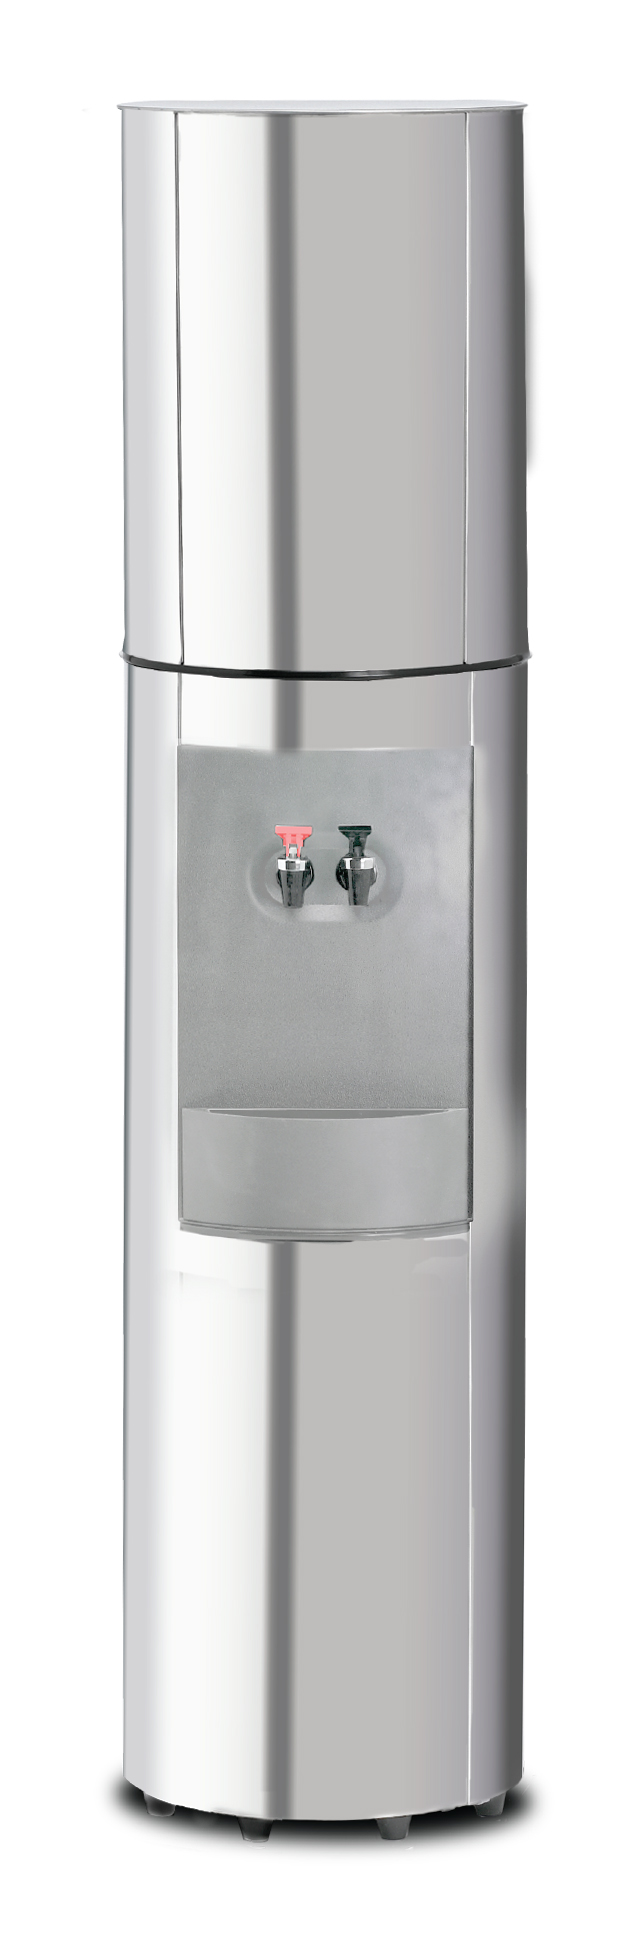 Stainless Steel Water Dispenser Water Dispenser Hot And Cold